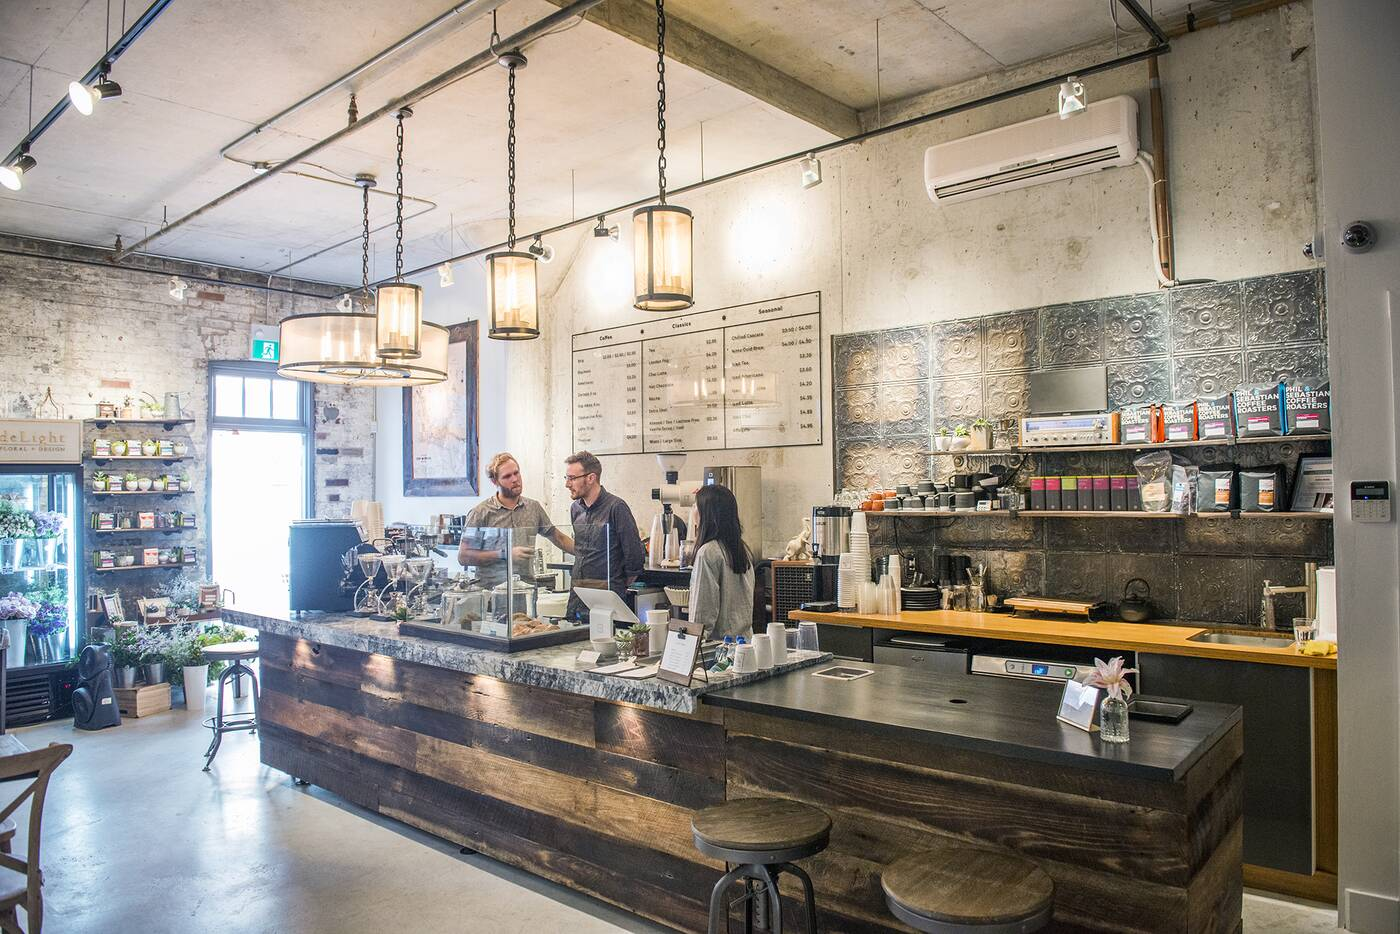 10 new coffee shops with the best interior design in Toronto